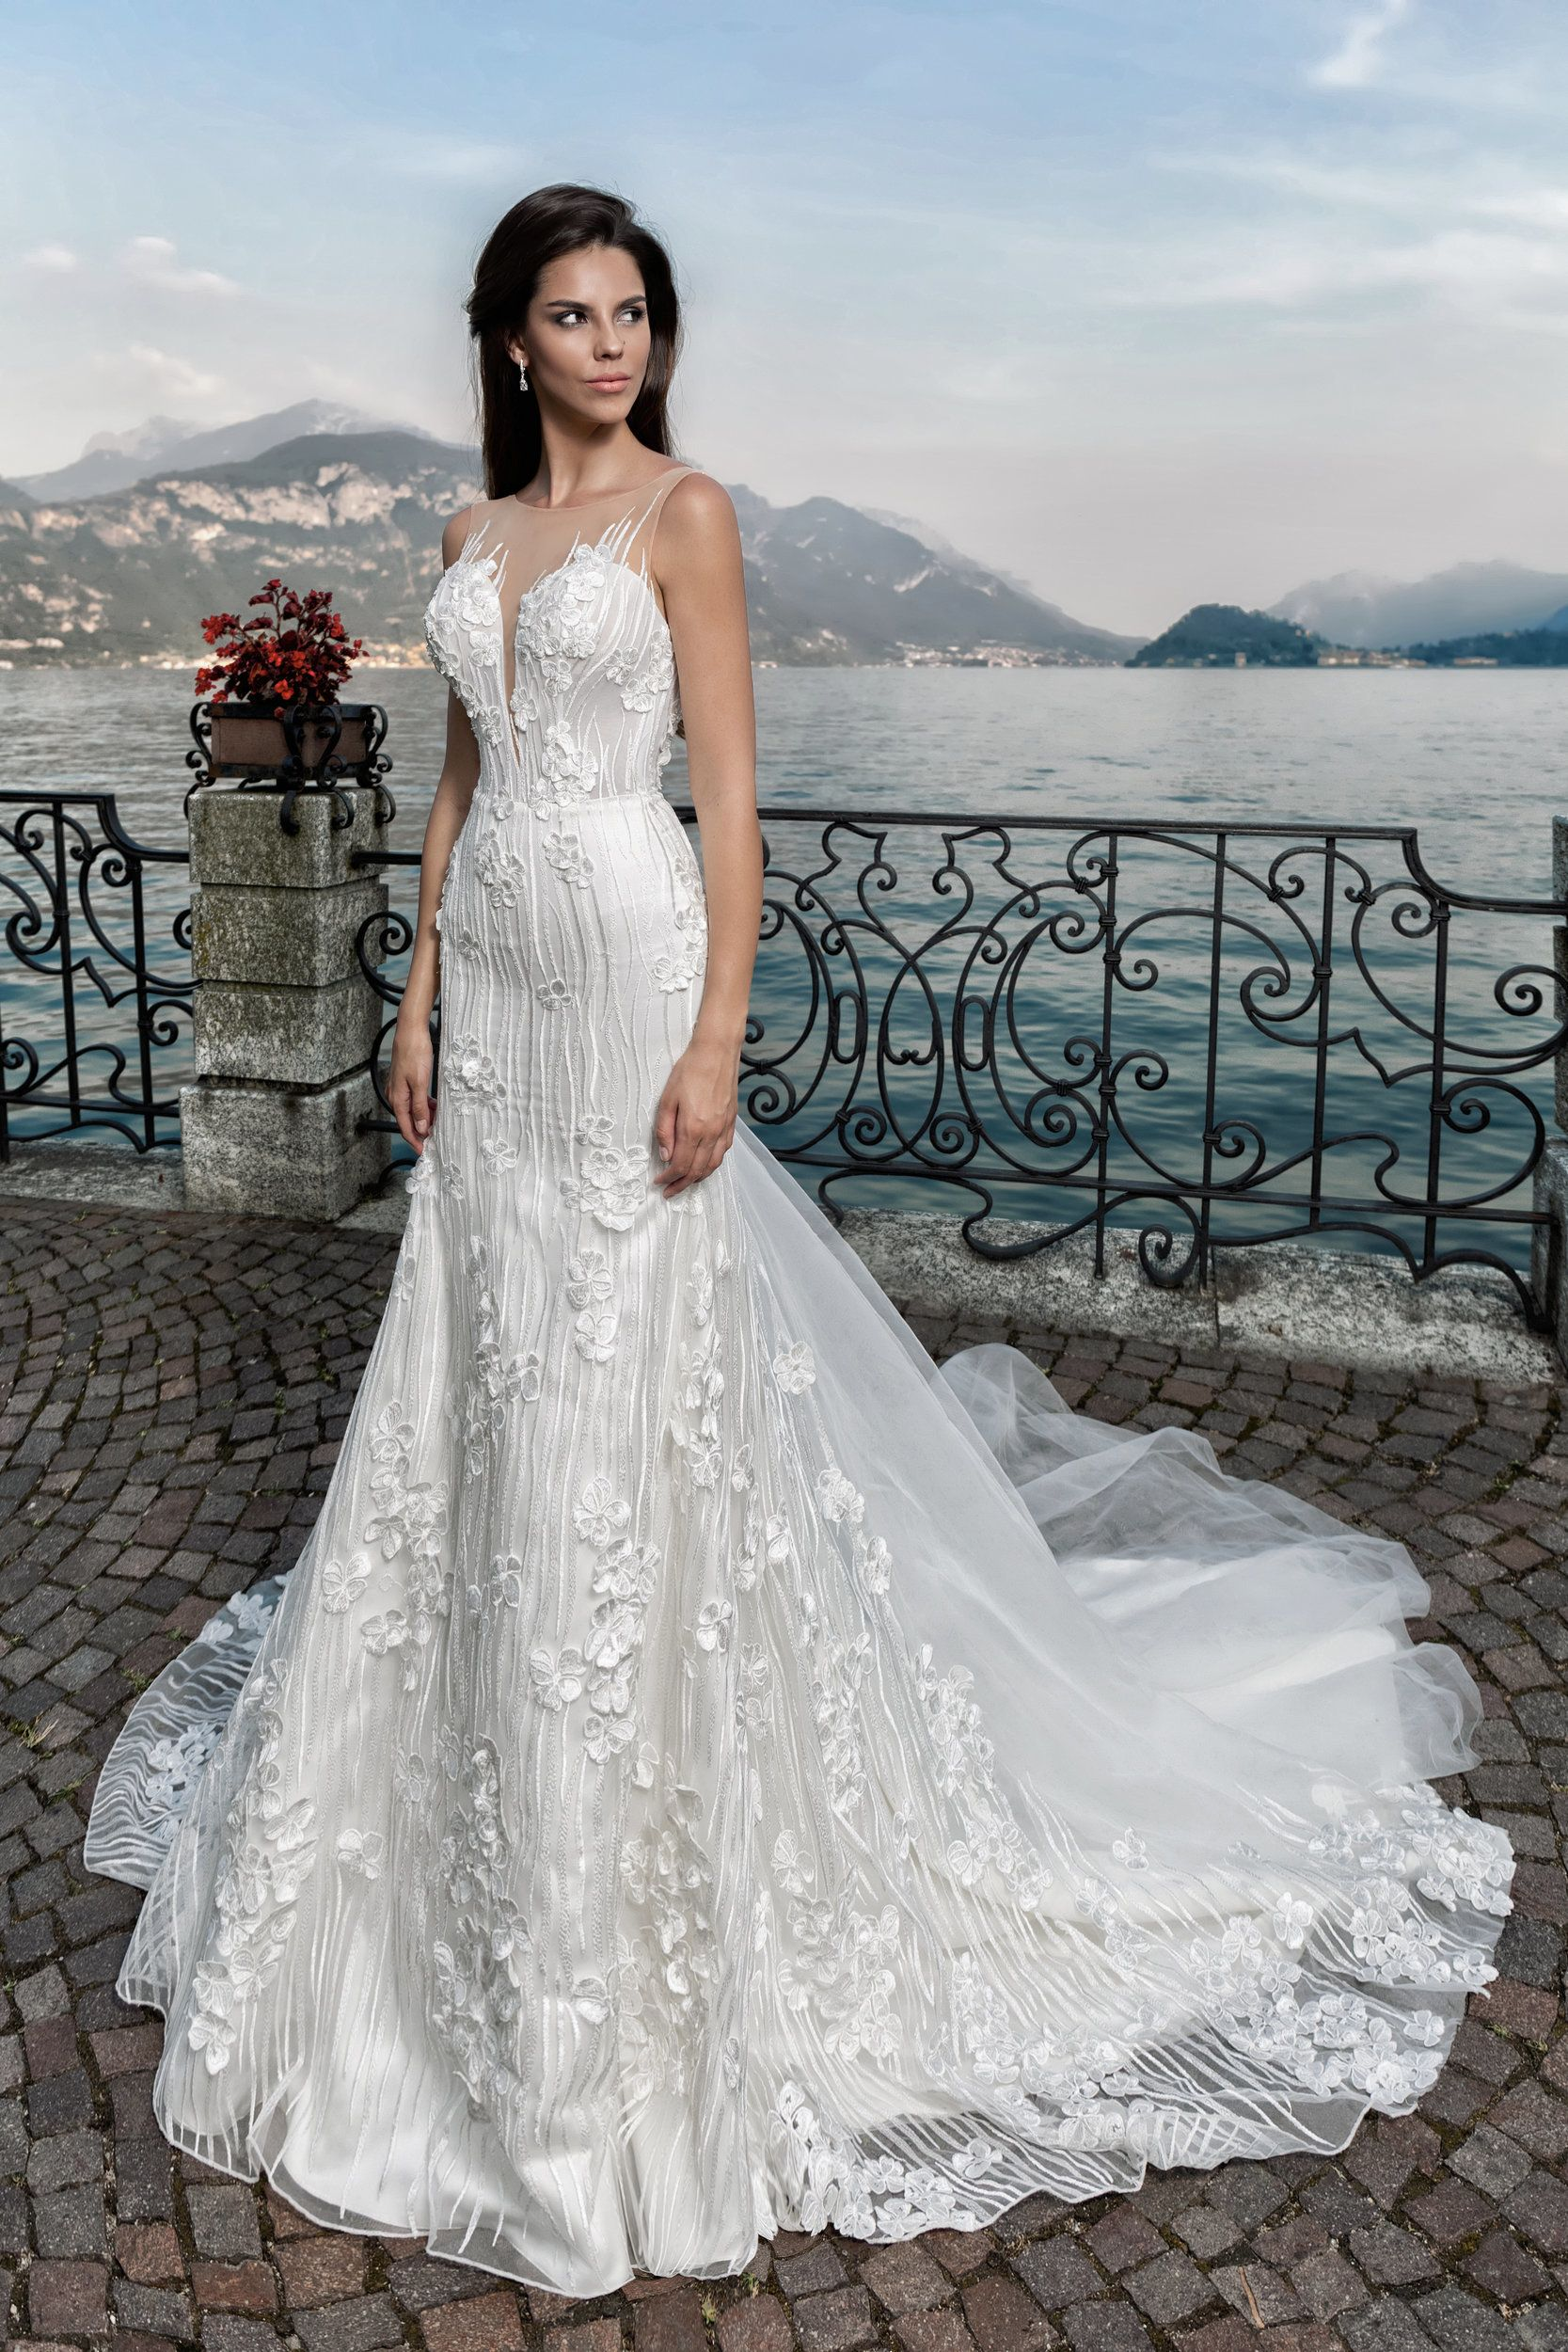 6635cac1ff wedding dress by MISTRELLI COUTURE ONLY at CHARMÉ GABY BRIDAL GOQN Boutique  Clearwater FL